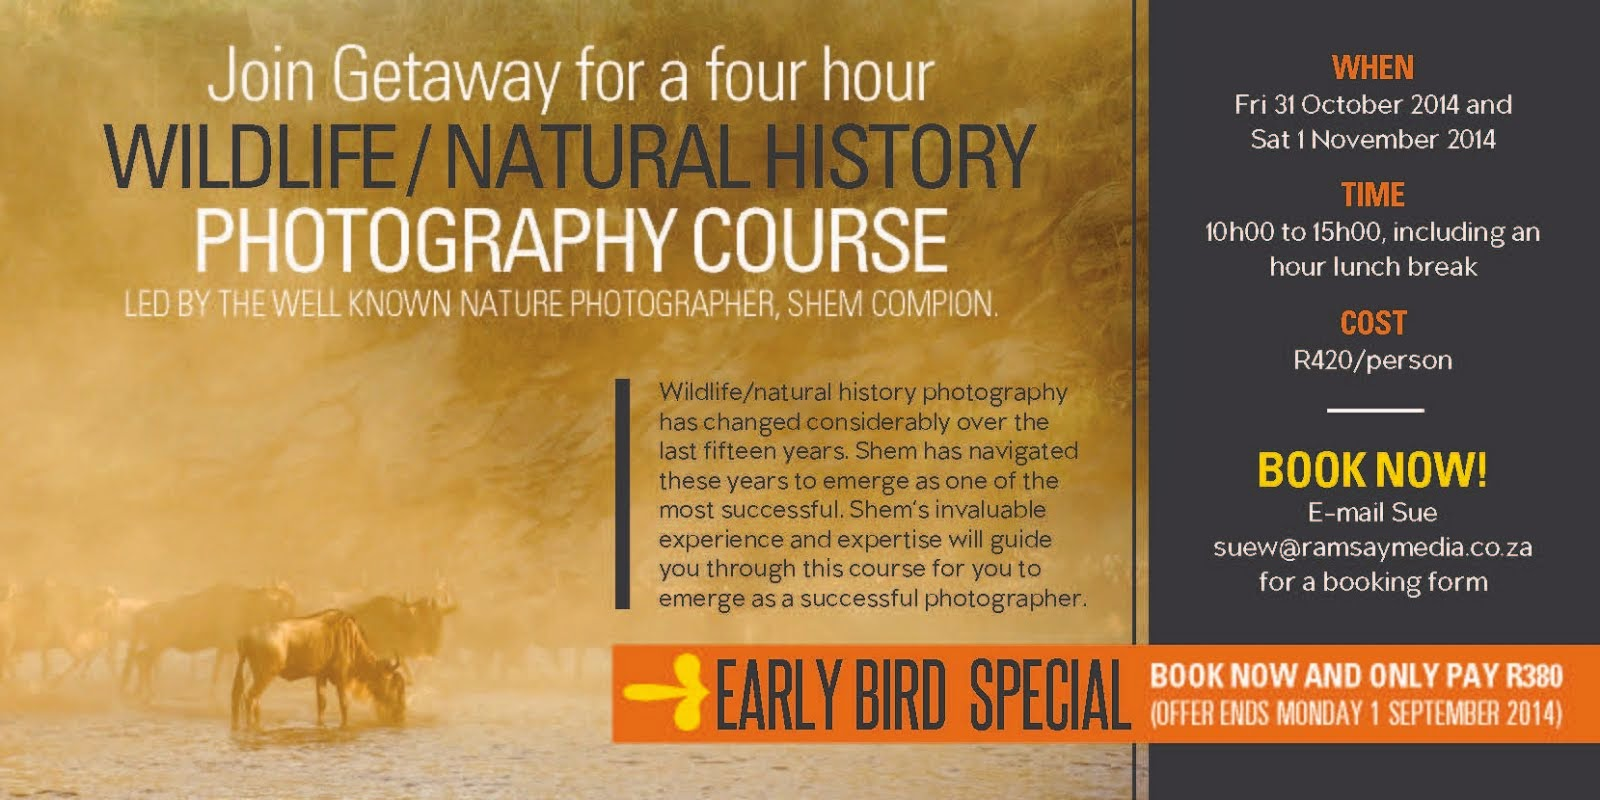 Gateway Wildlife / Natural History Photography course